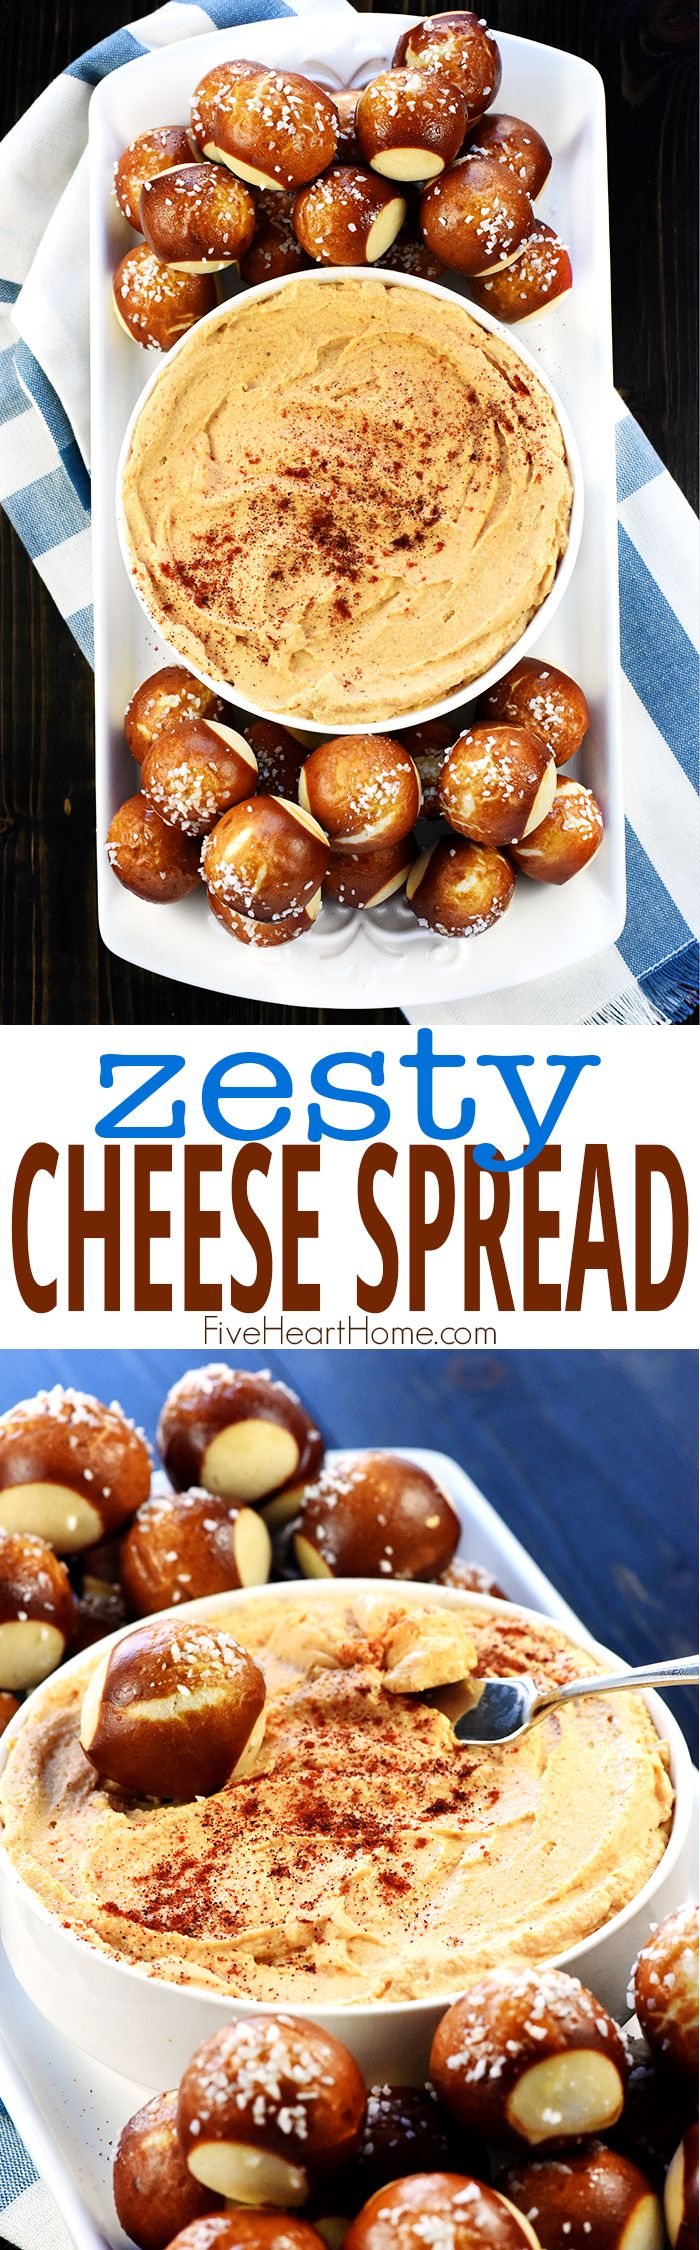 Zesty Cheese Spread ~ quick to make, delicious on pretzels, crackers, or raw veggies, and a perfect recipe for Super Bowl Sunday! | FiveHeartHome.com via @fivehearthome